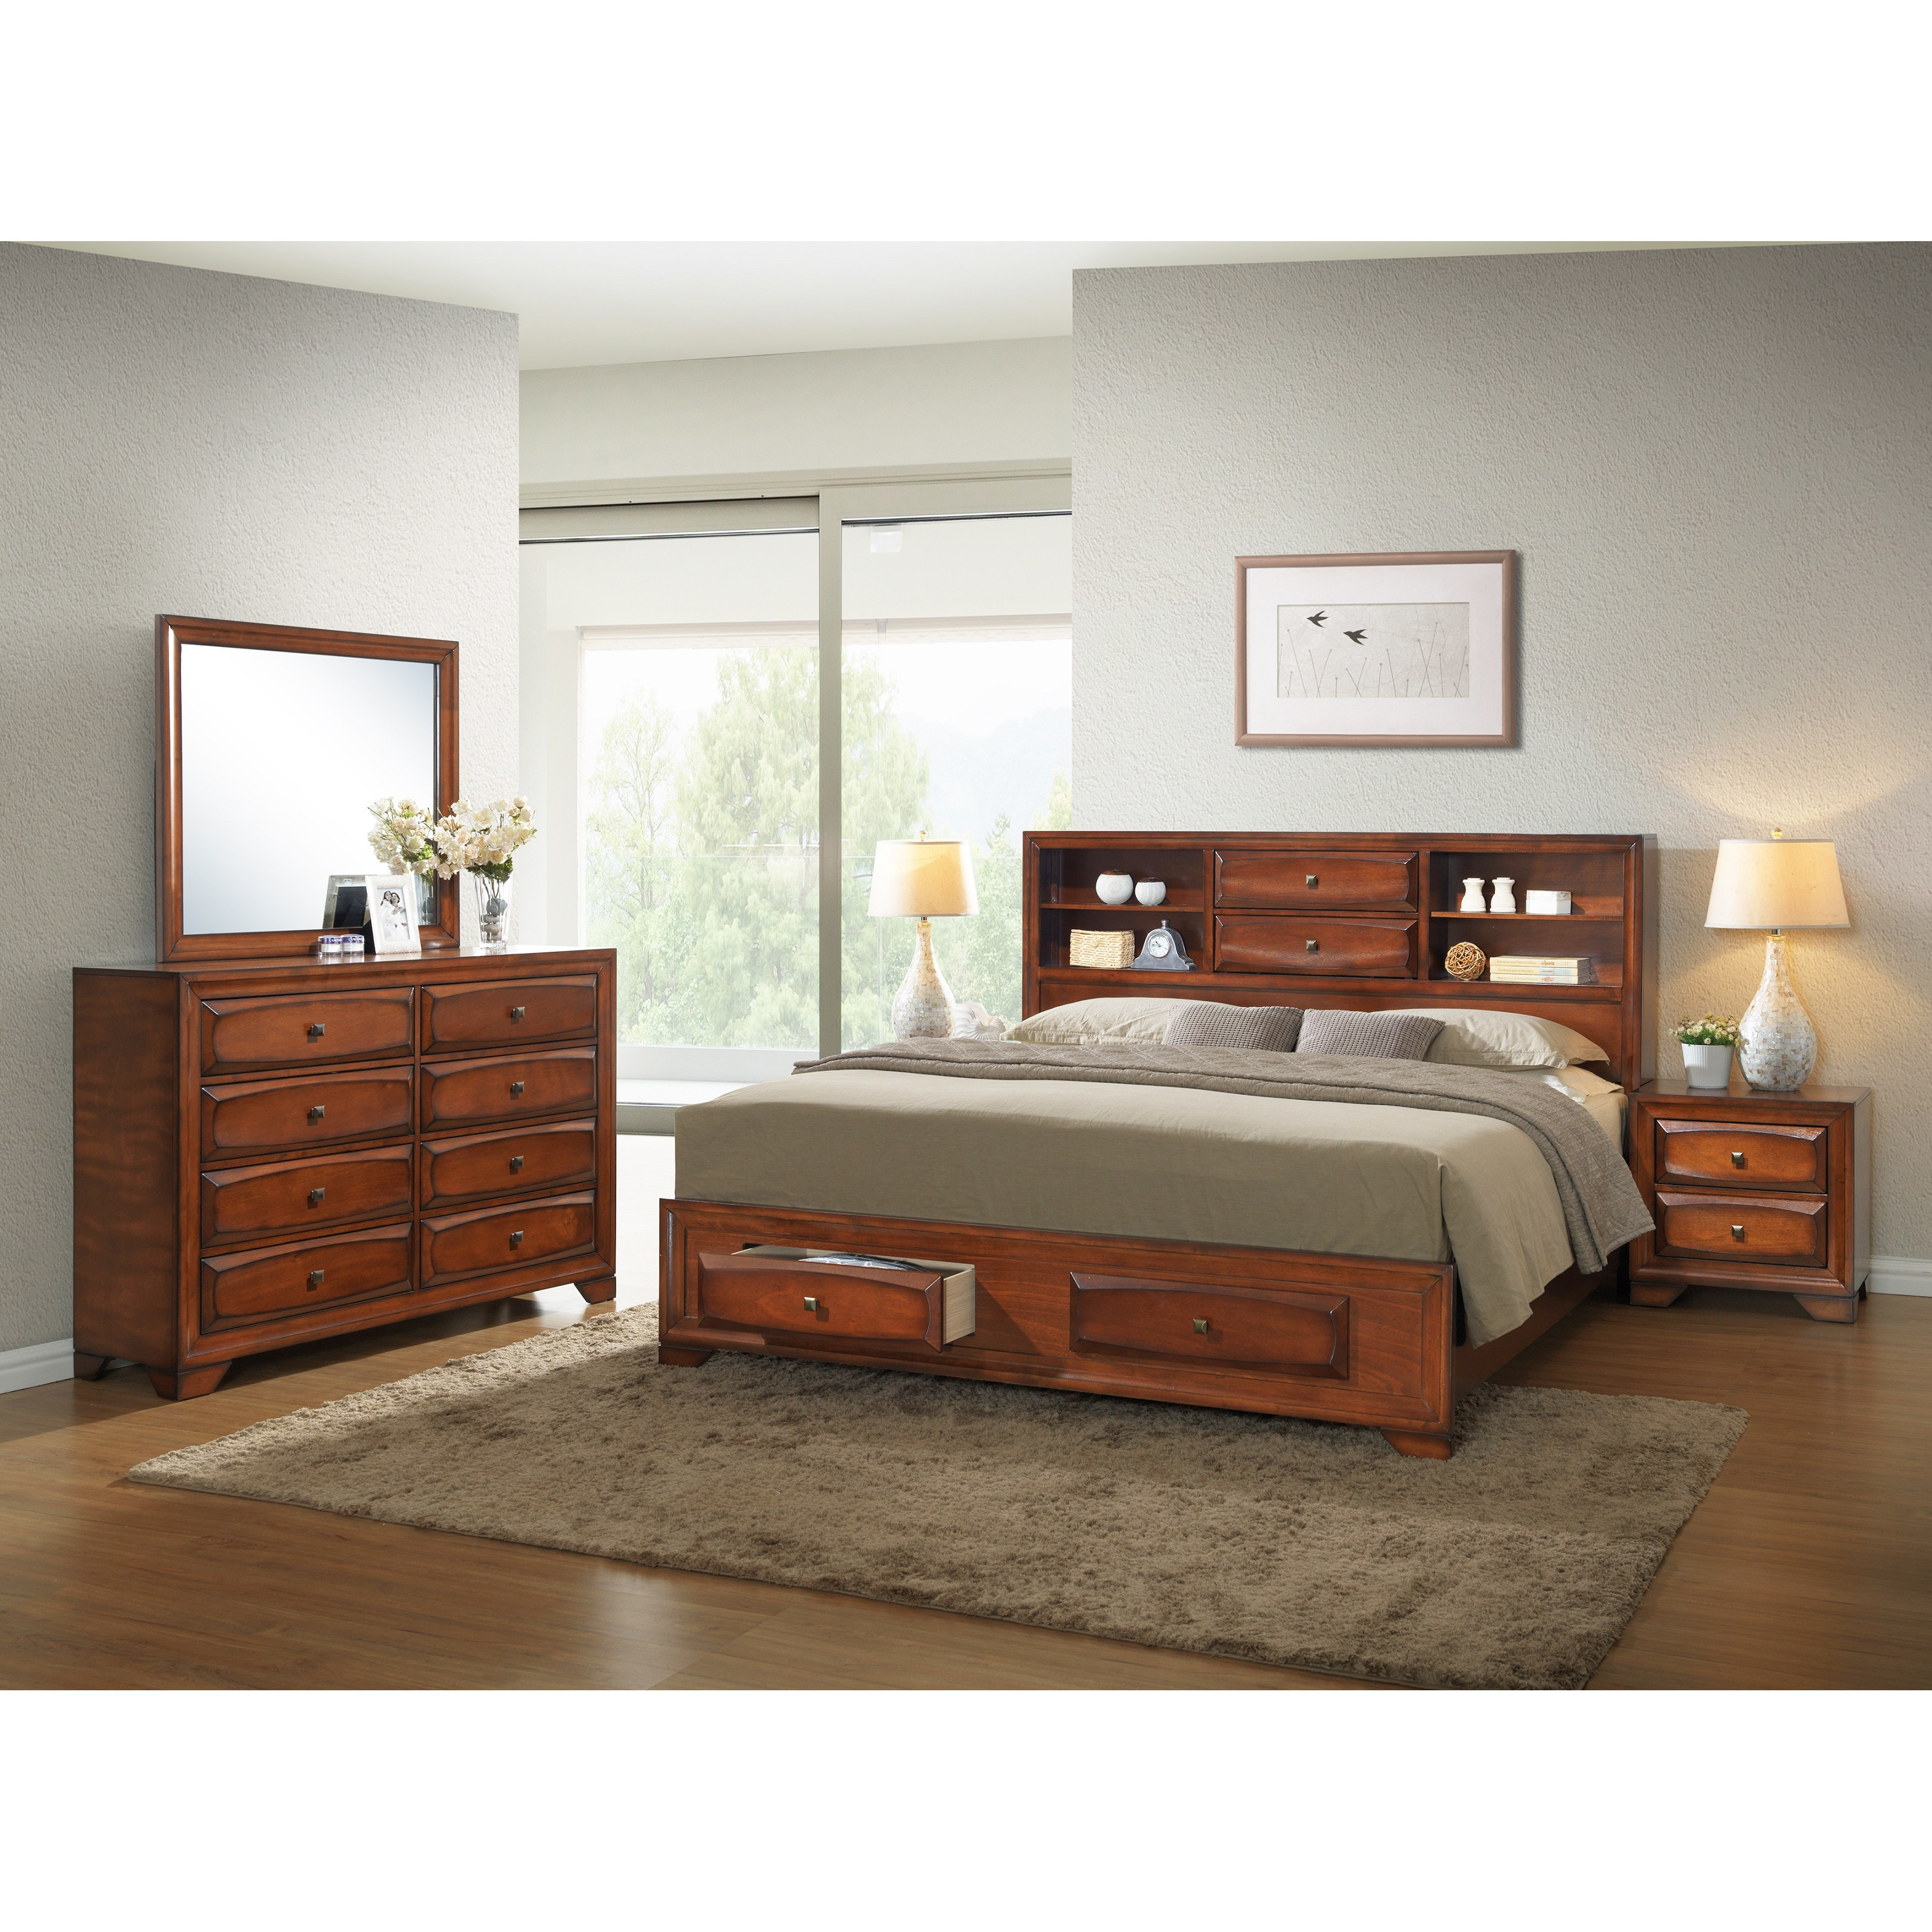 Best ideas about Wayfair Bedroom Sets . Save or Pin Roundhill Furniture Asger Queen Platform Customizable Now.